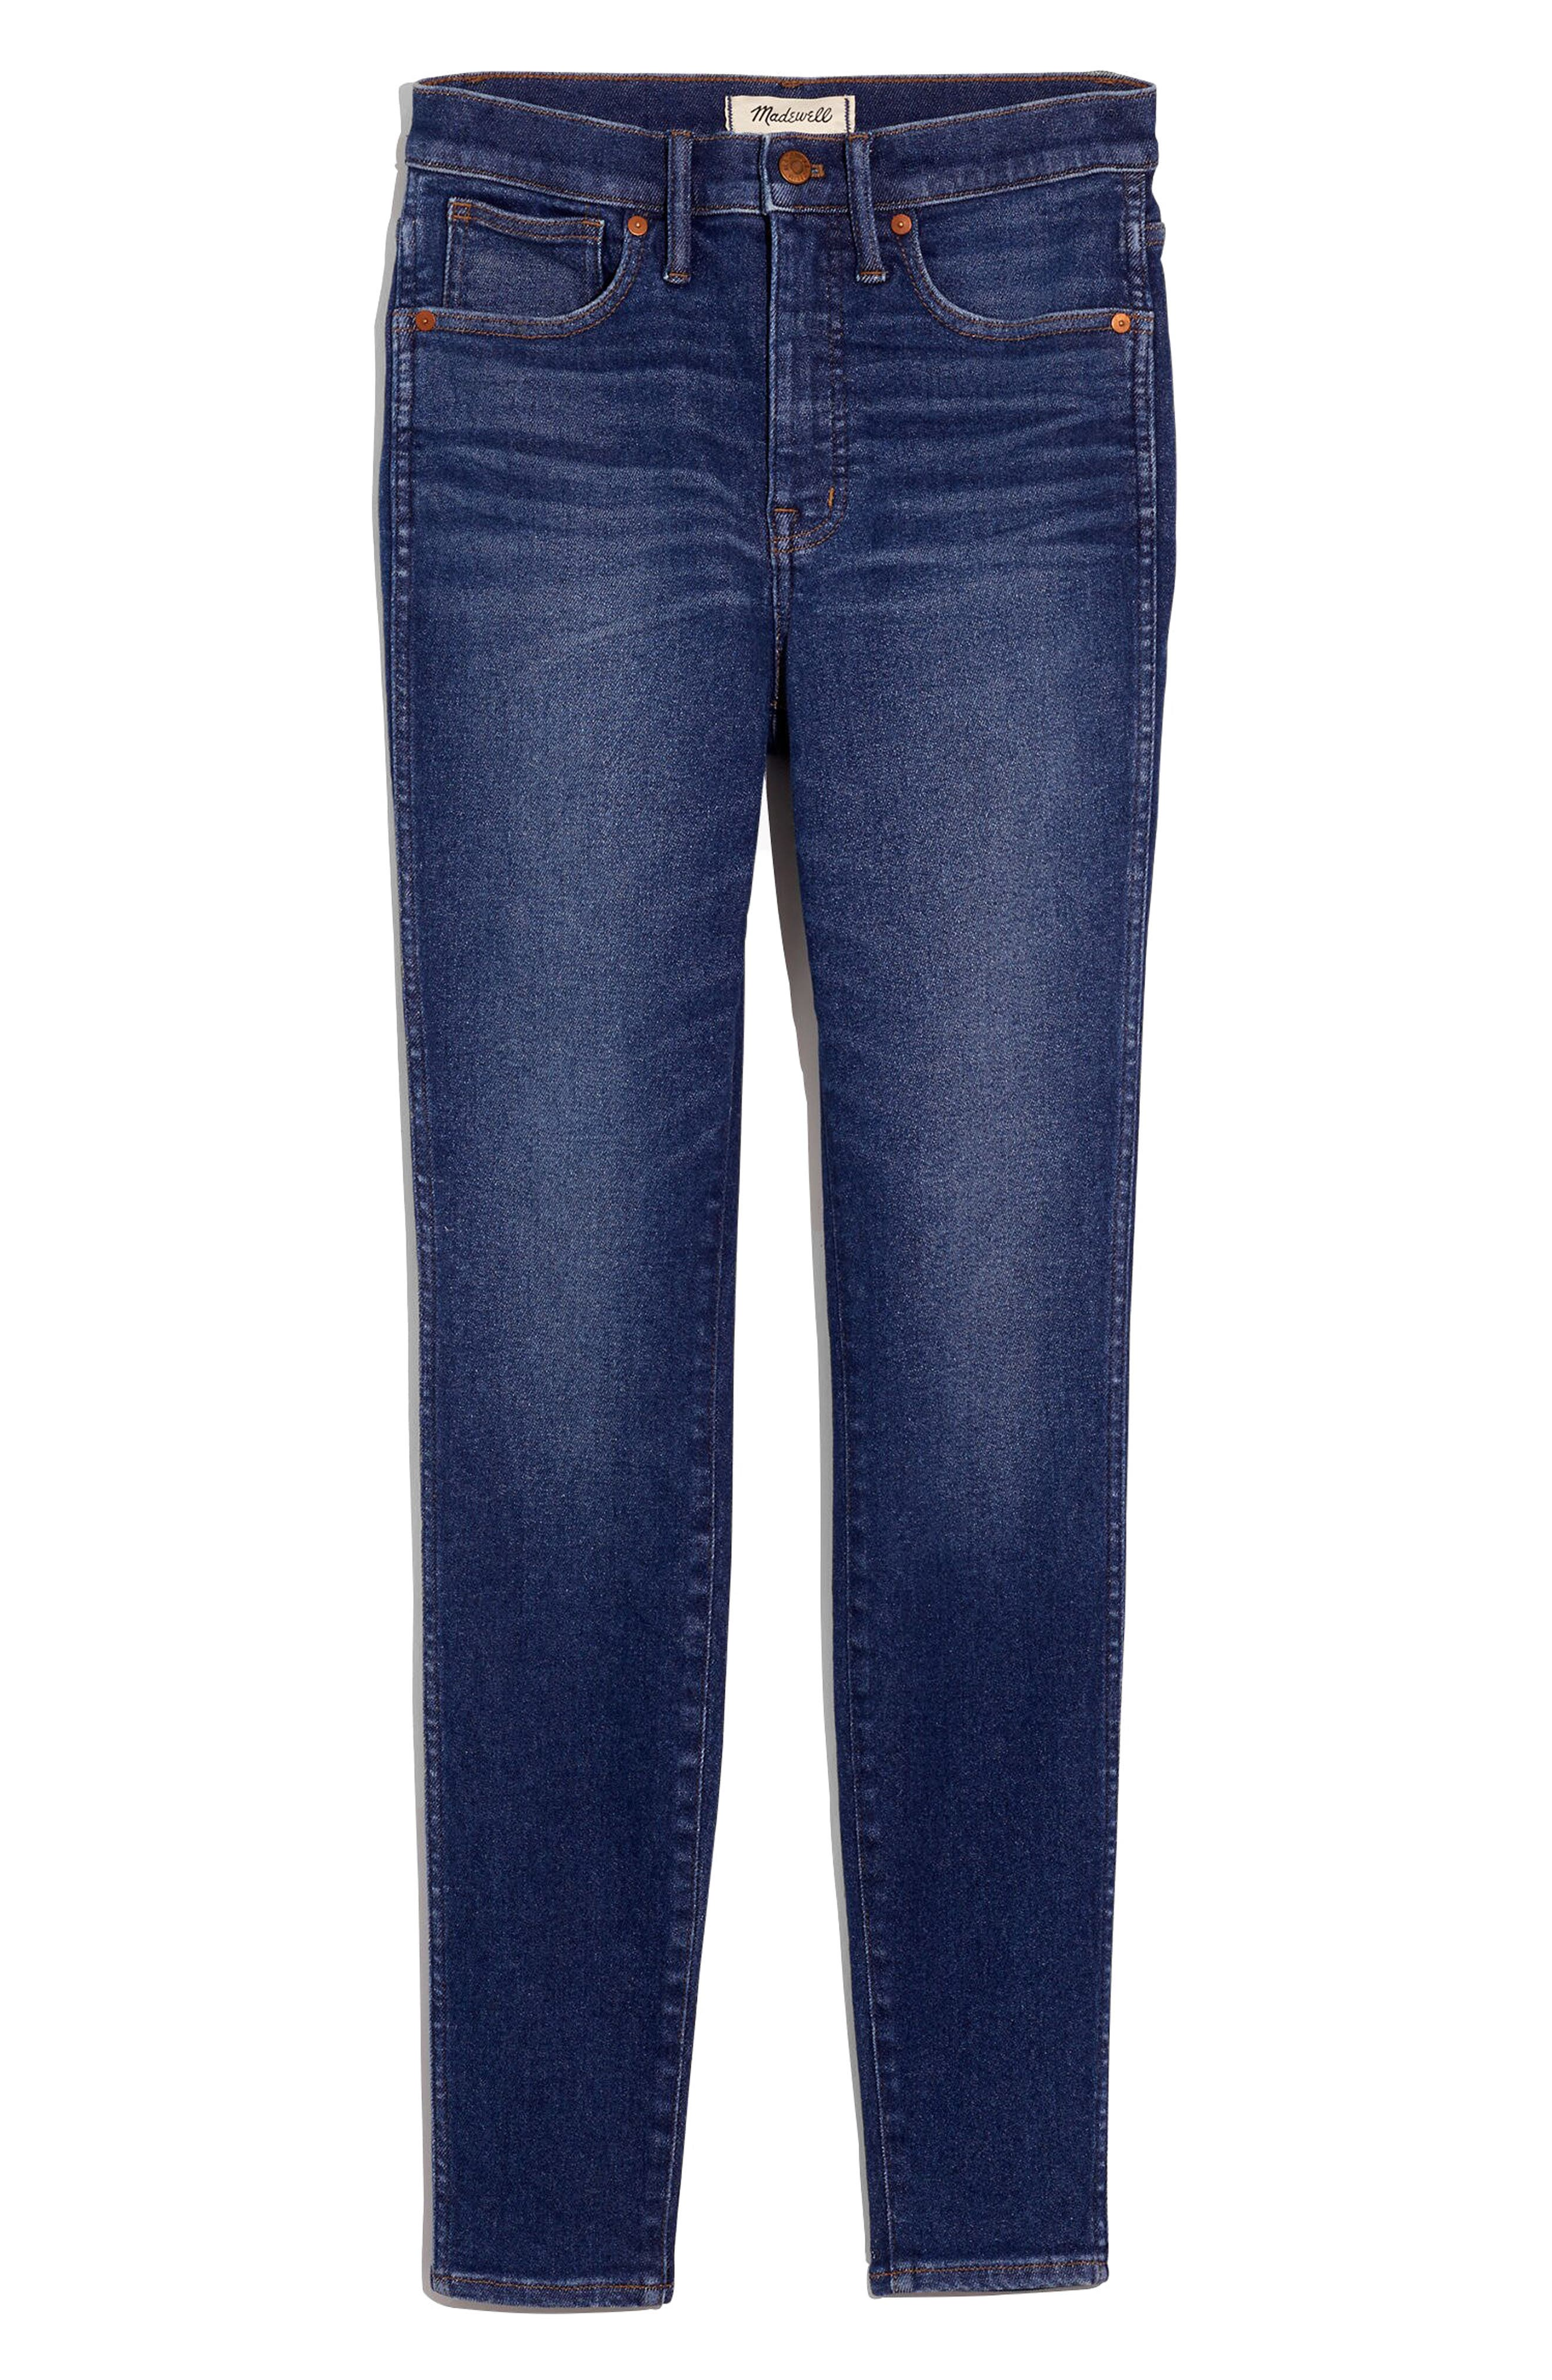 Madewell 10-Inch High Rise Skinny Jeans (Winston Wash) | Nordstrom